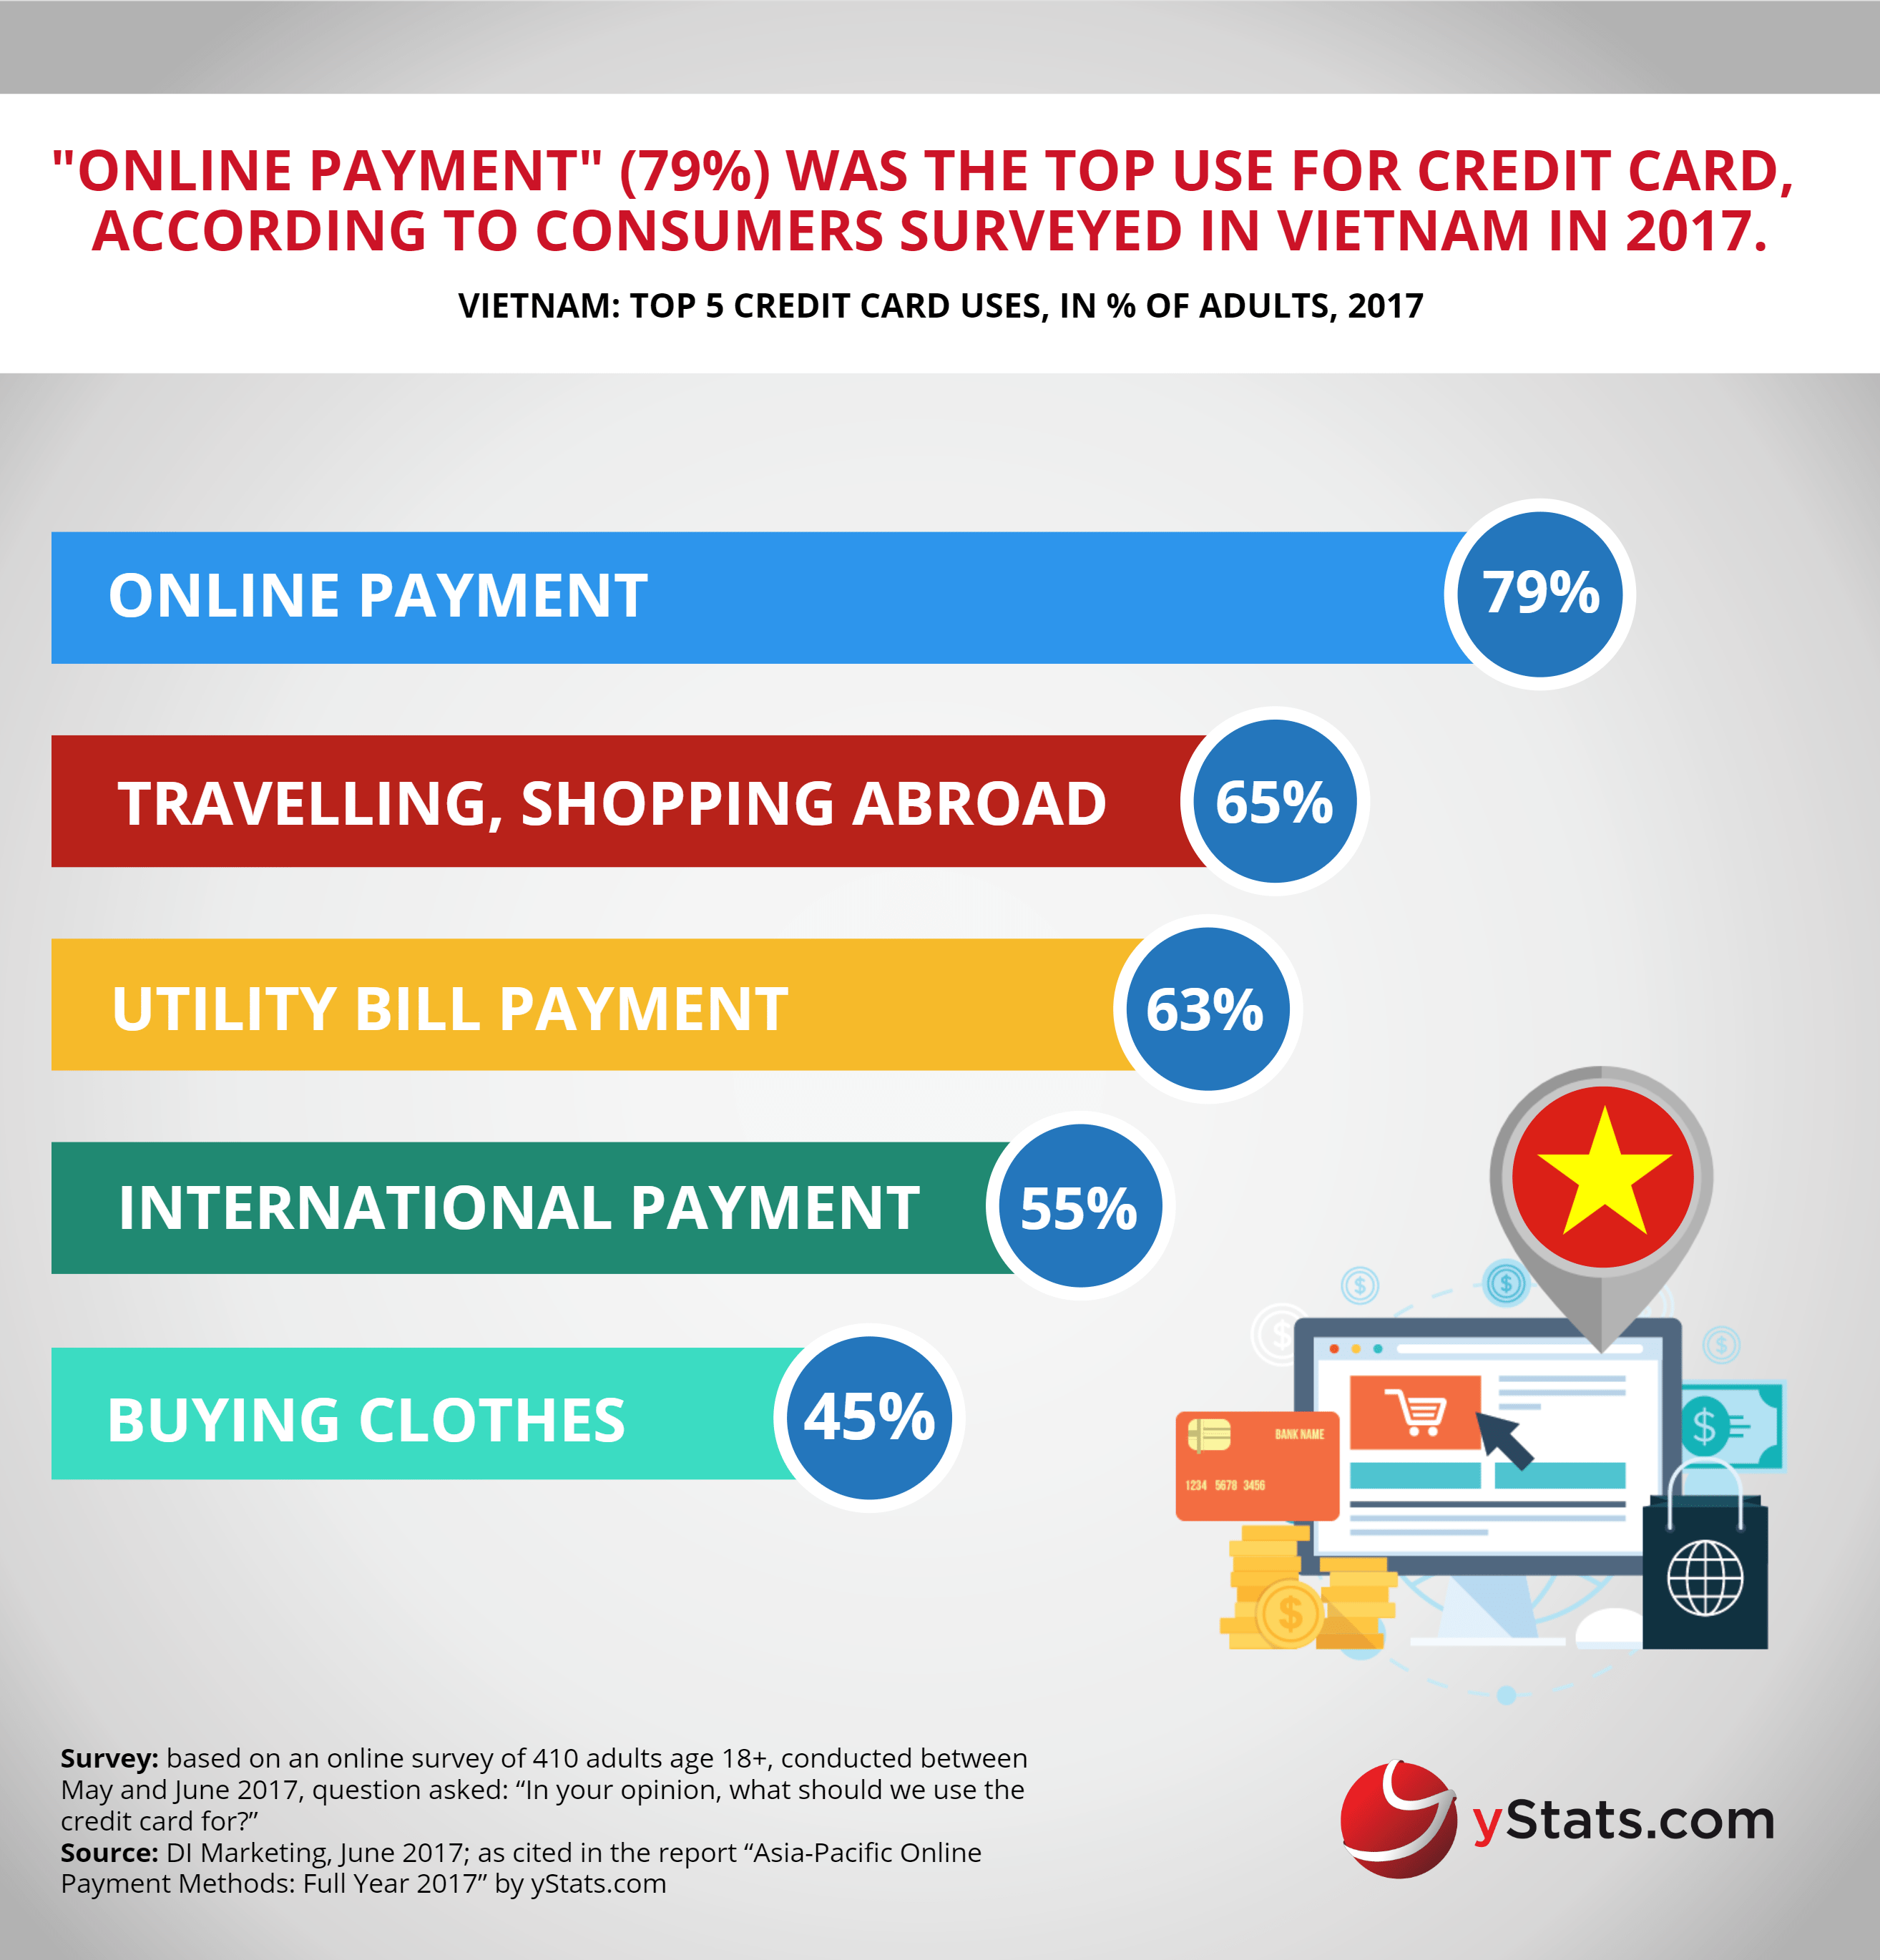 Asia-Pacific Online Payment Methods